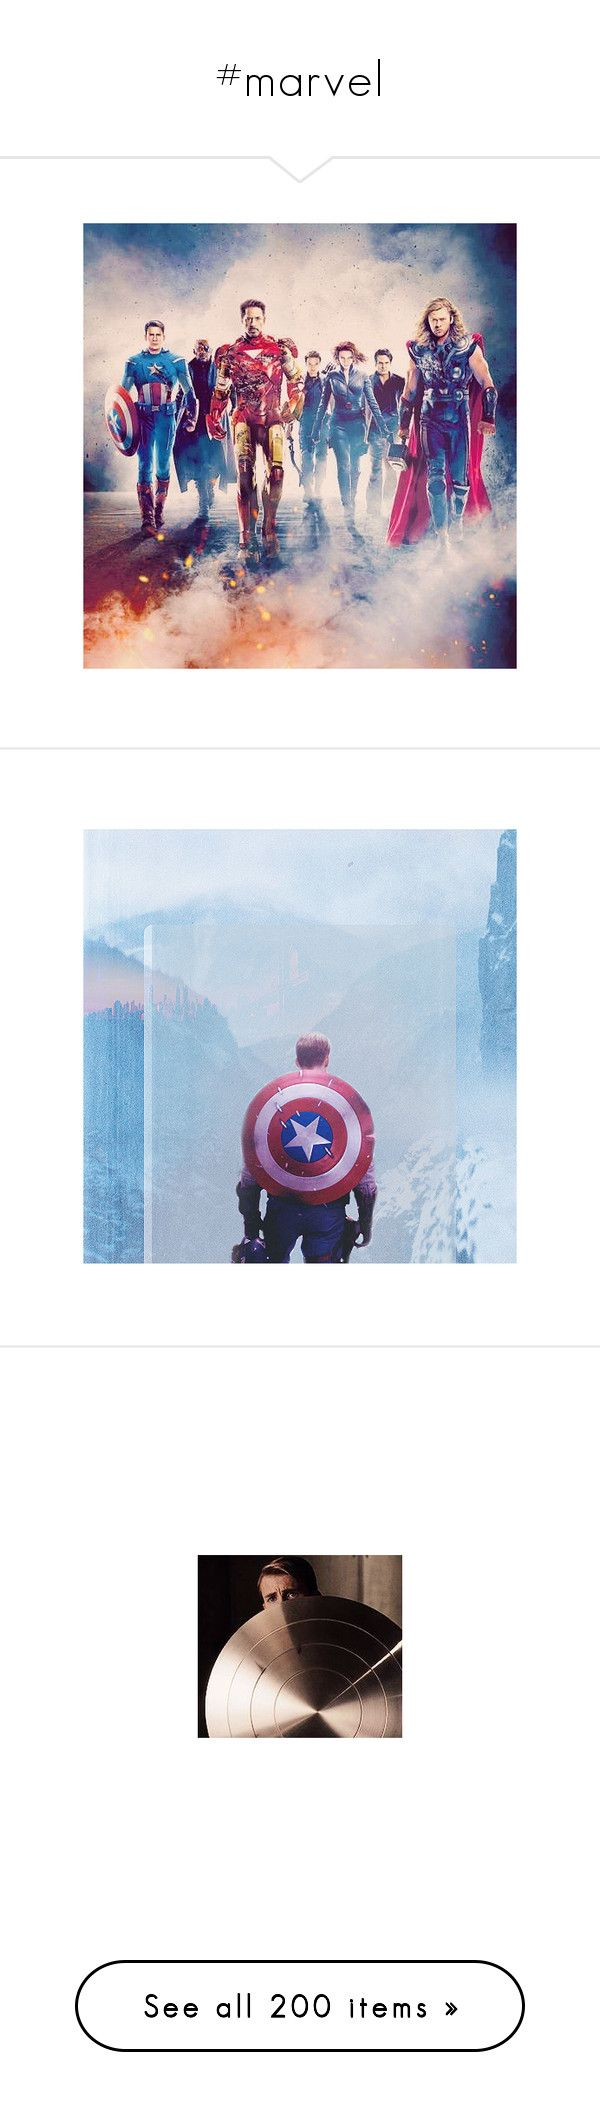 """""""#marvel"""" by mayhem-in-gotham ❤ liked on Polyvore featuring marvel, avengers, pictures, art, hero, captain america, comics, chris evans, avengers life and backgrounds"""